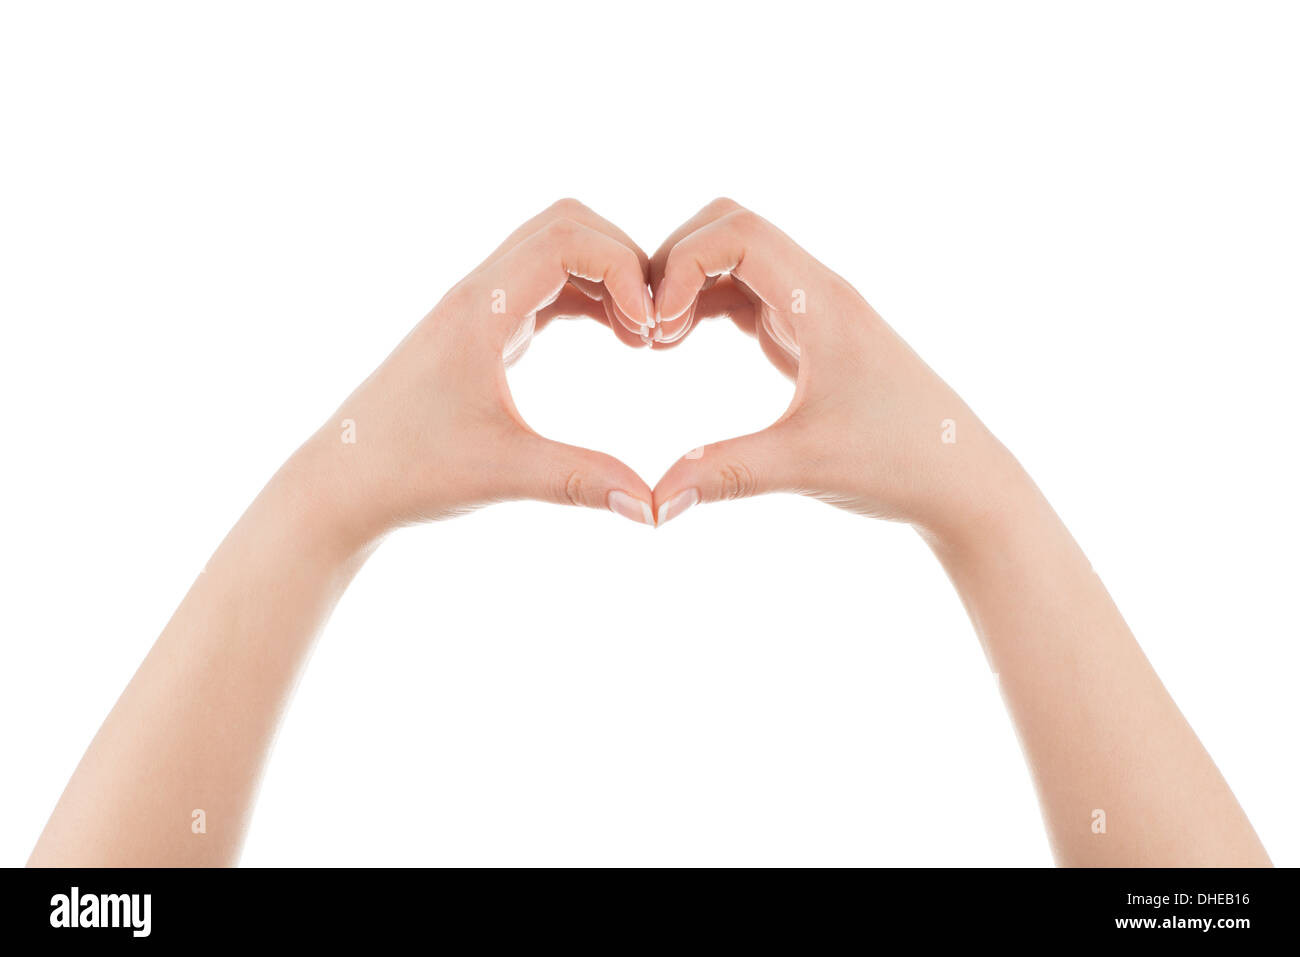 Two woman's hands are forming heart shape on white background. - Stock Image